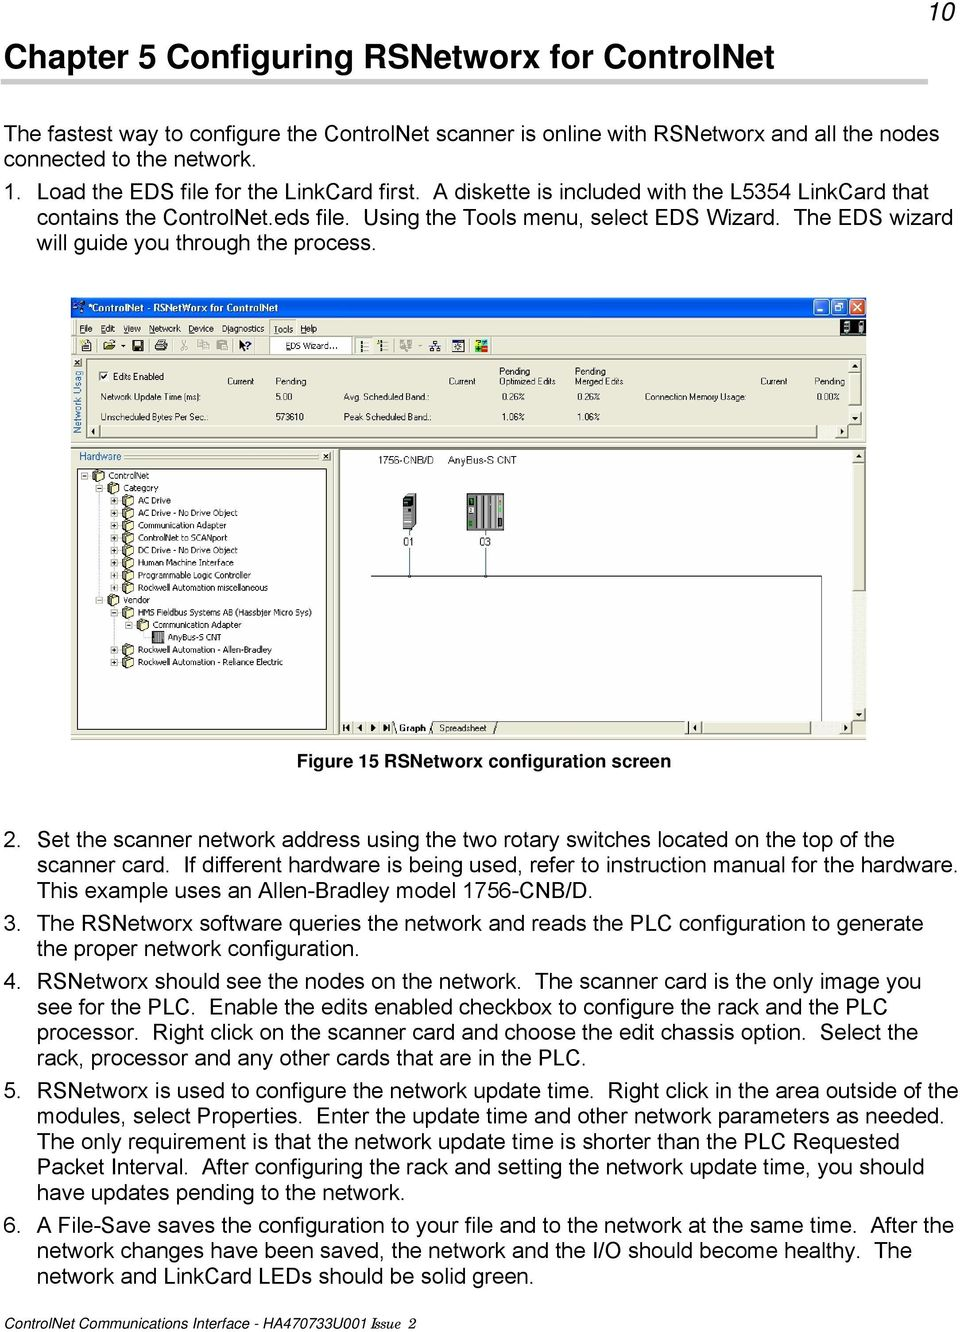 Figure 15 RSNetworx configuration screen 2. Set the scanner network address using the two rotary switches located on the top of the scanner card.